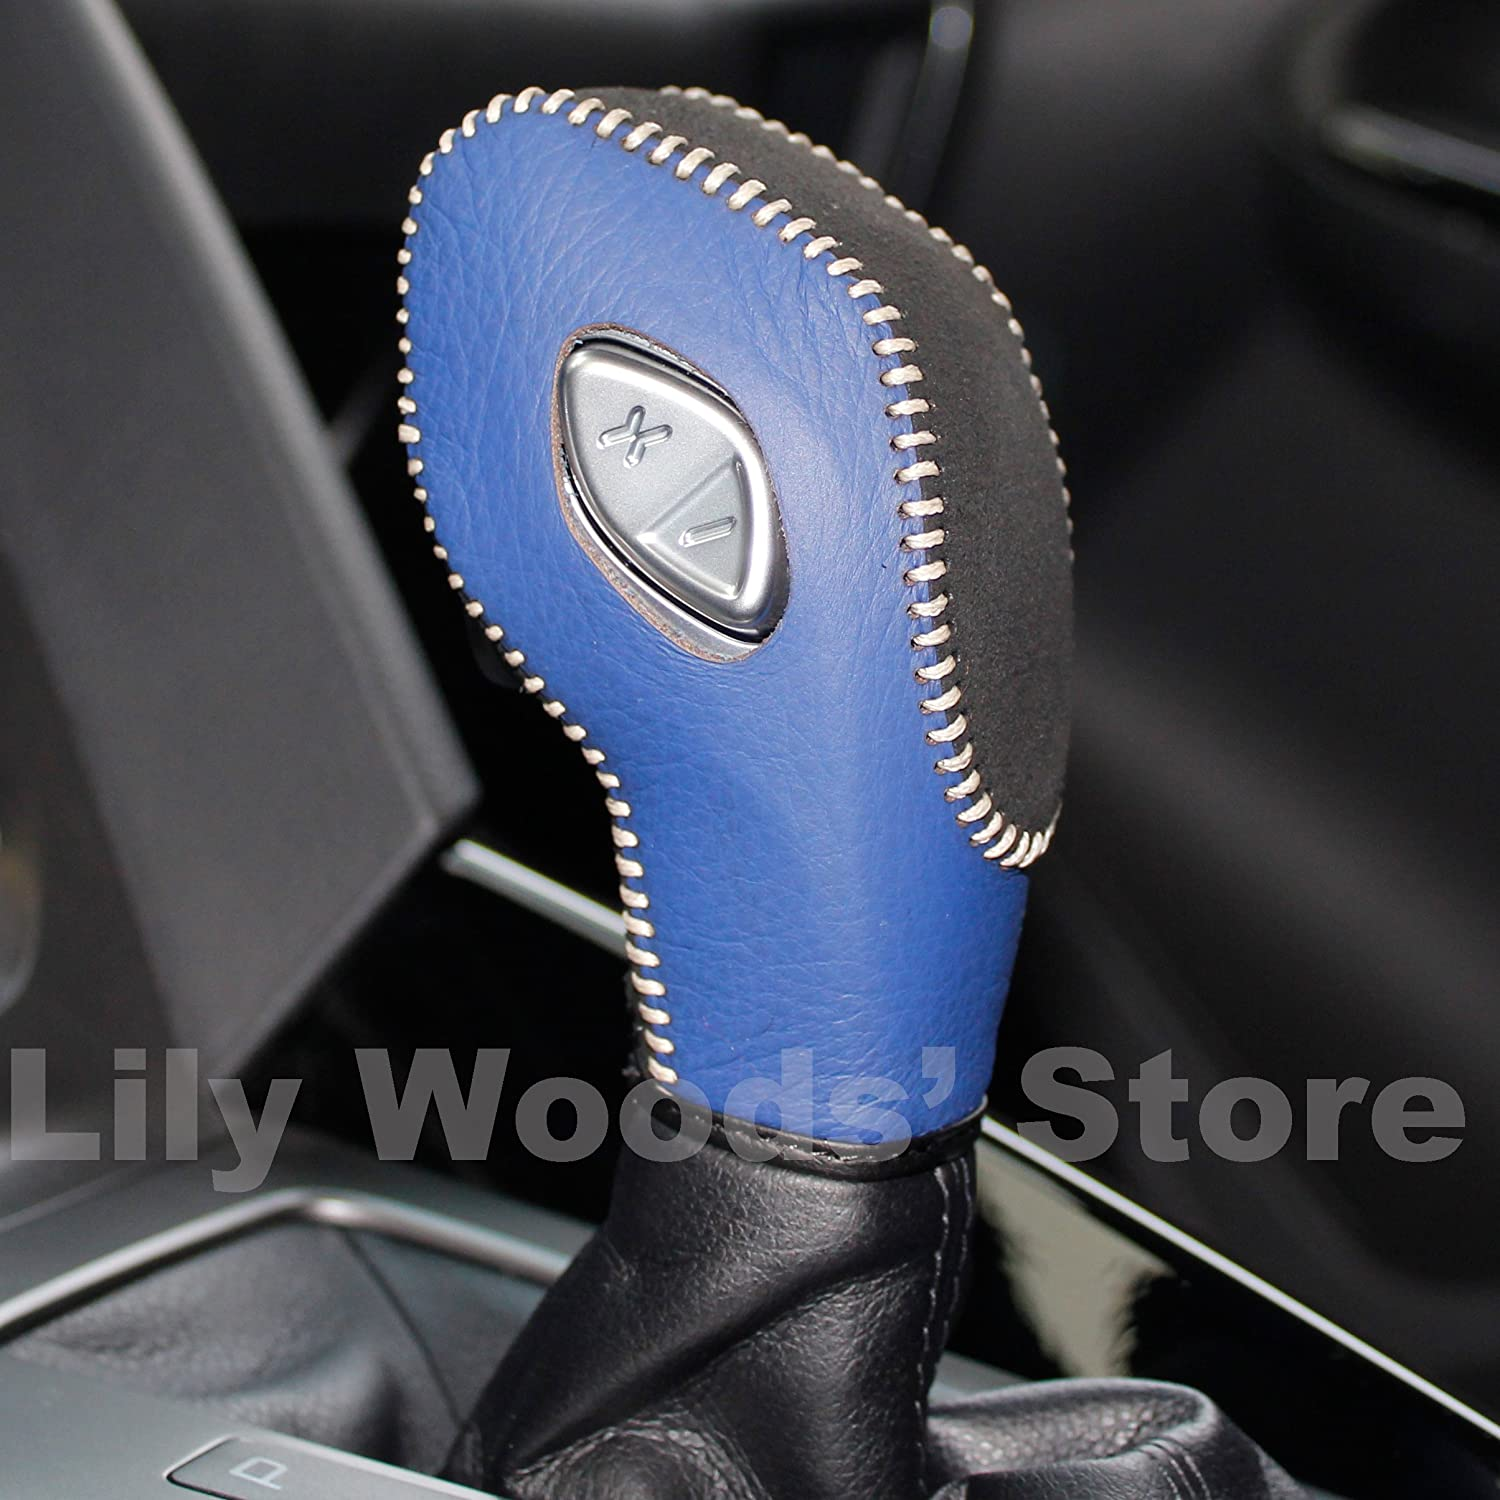 2013 2014 2015 2 2013 2014 2015 2016 Ford Fusion S,Ford Fusion SE JI Black Genuine Leather Gear Shift Knob Cover for 2012 2013 2014 2015 2016 Ford Focus 2014 2015 2016 Ford Fiesta